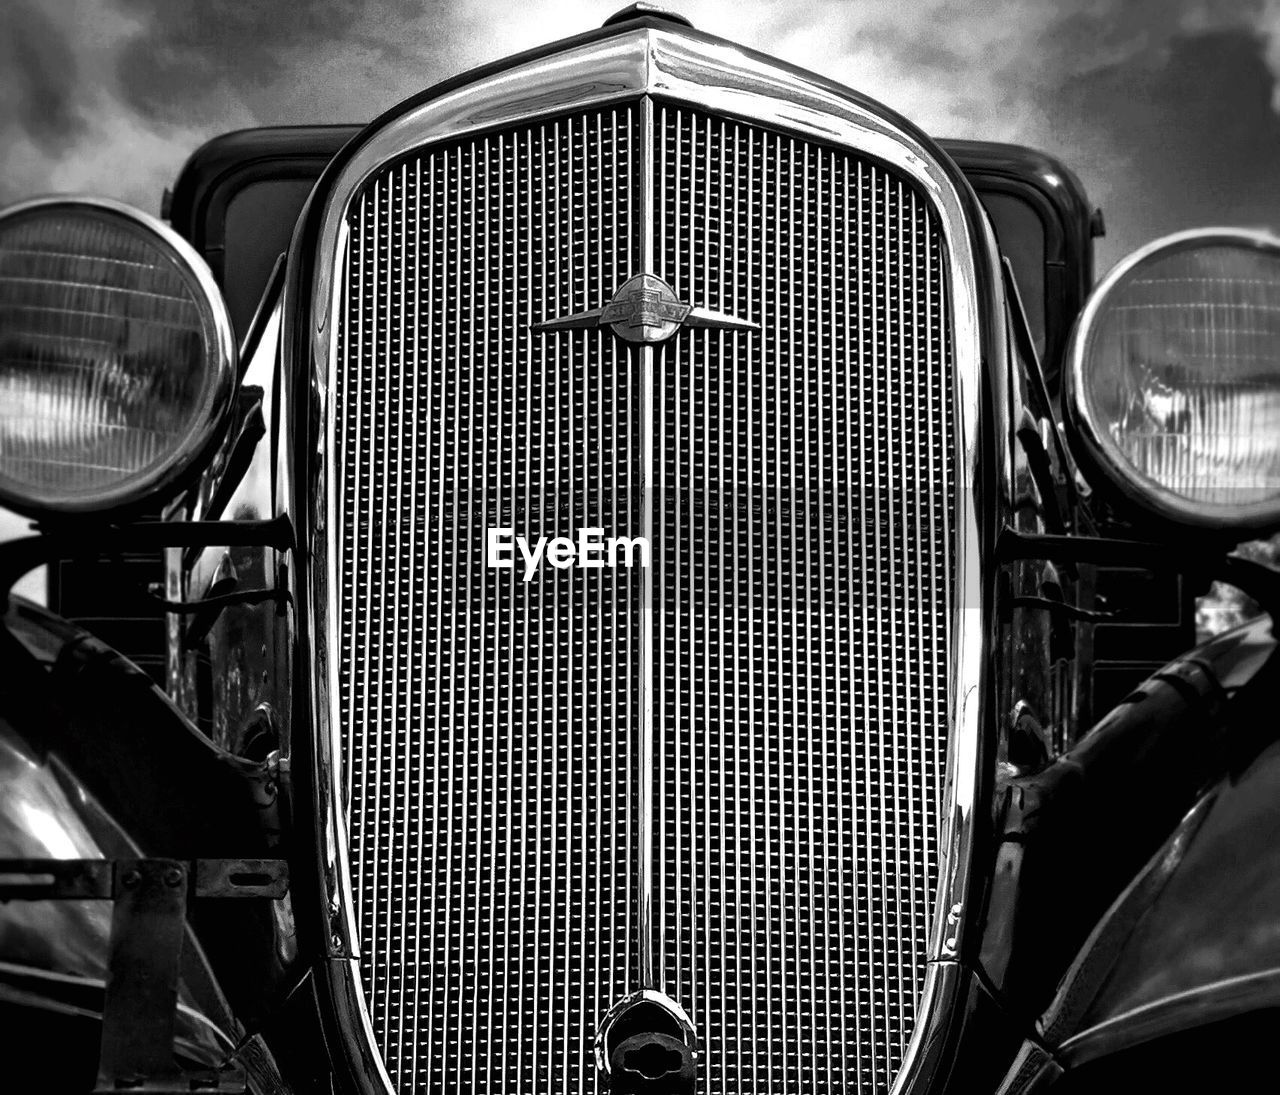 1936 Chevrolet truck Iphone6 IPhoneography Black And White Blackandwhite EyeEm Best Shots - Black + White Truck Chevy Grill Black & White Iphonegraphy